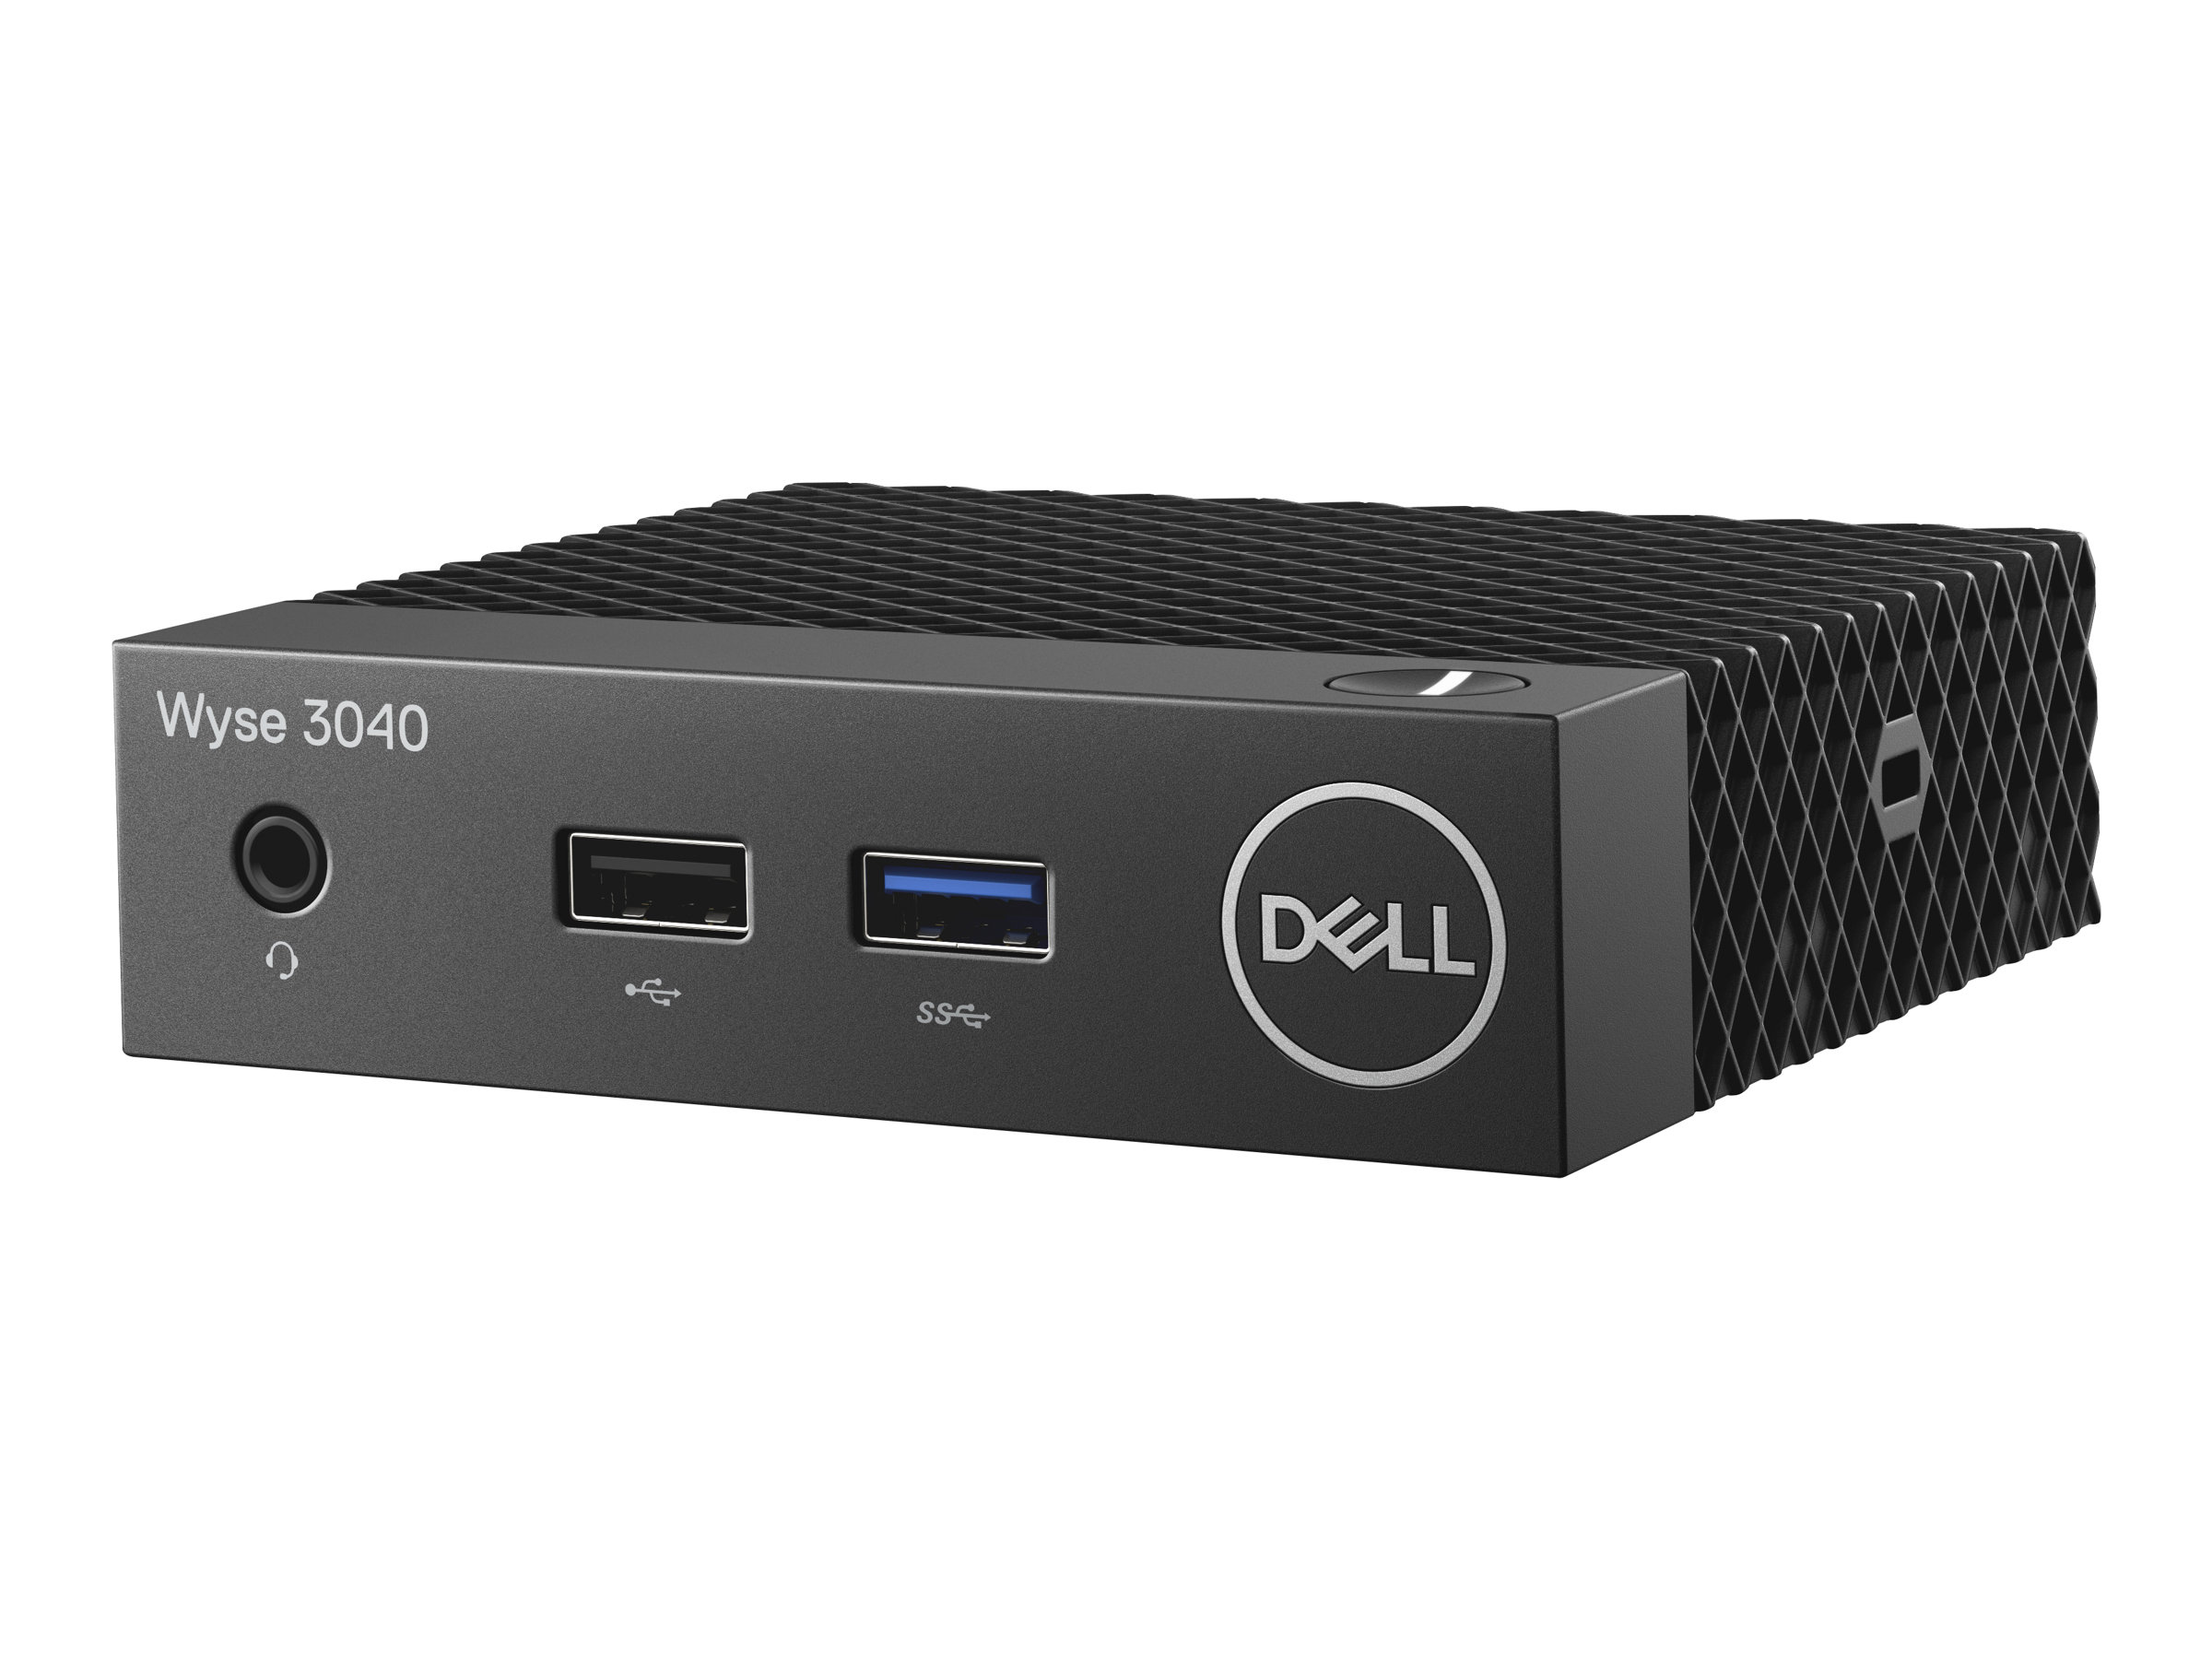 Dell 3040 - Thin Client - DTS - 1 x Atom x5 Z8350 / 1.44 GHz